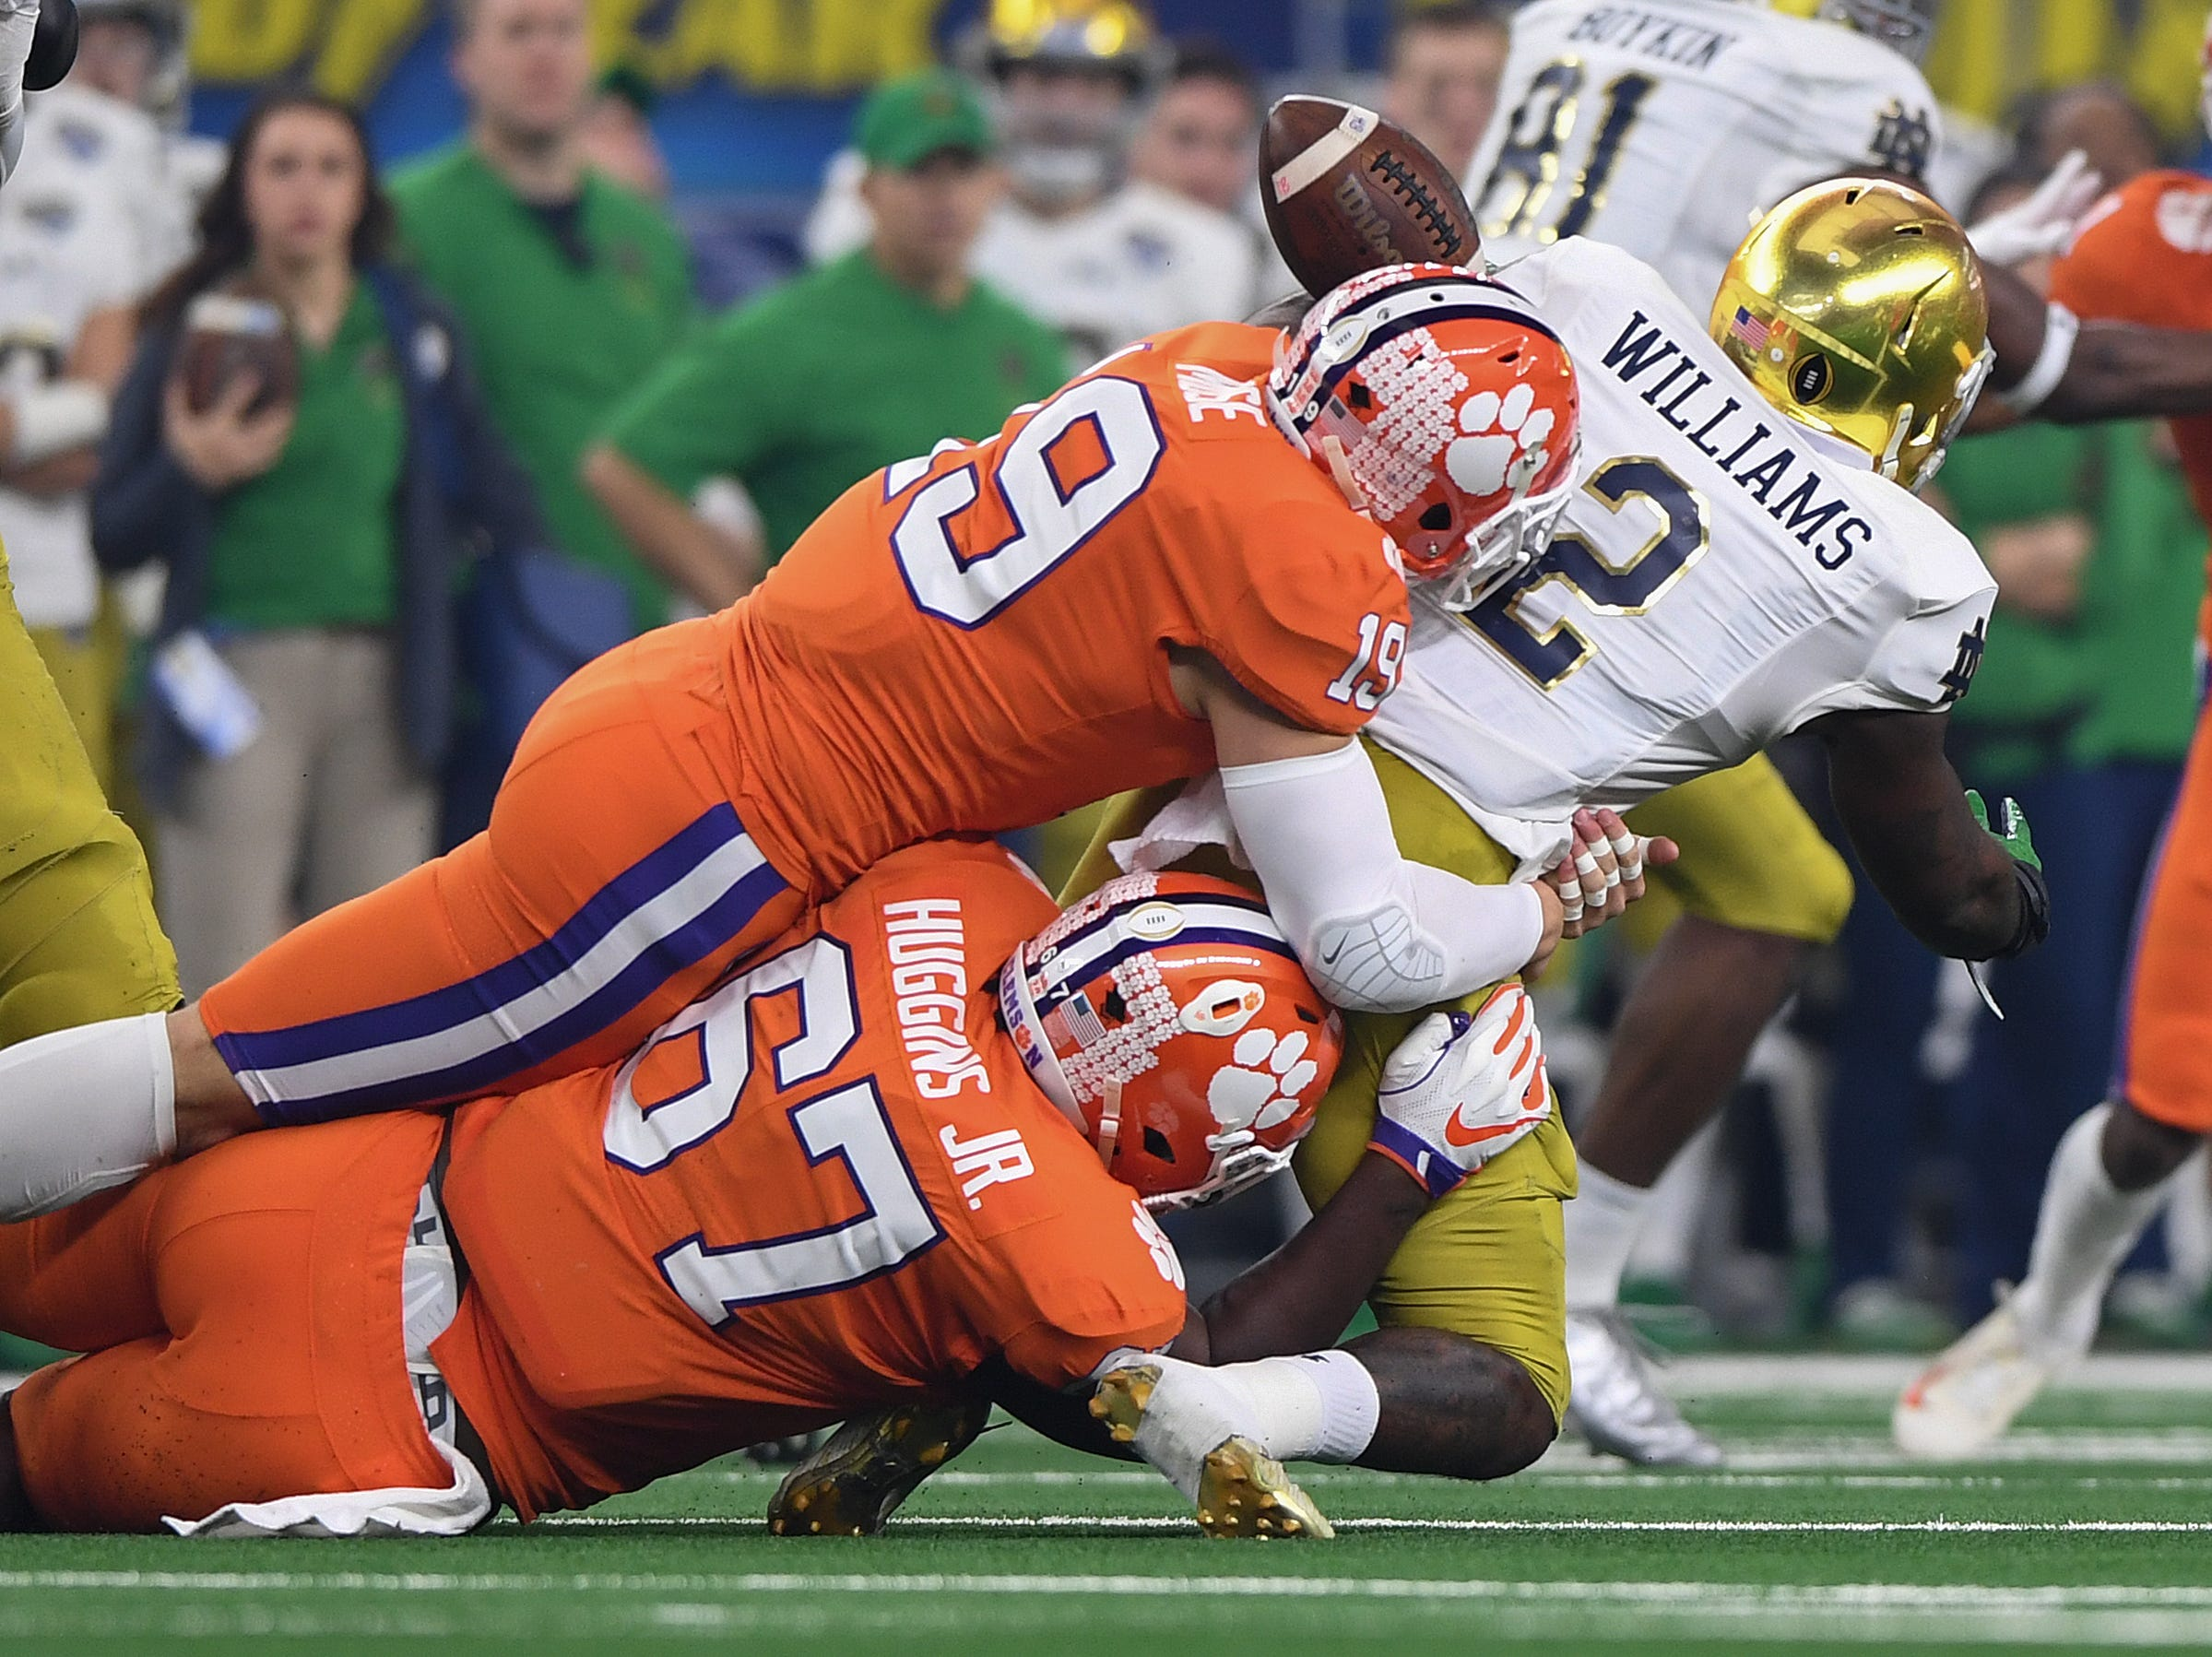 Clemson defensive back Tanner Muse (19) and defensive lineman Albert Huggins (67) bring down Notre Dame running back Dexter Williams (2) during the 1st quarter of the Goodyear Cotton Bowl at AT&T stadium in Arlington, TX Saturday, December 29, 2018.